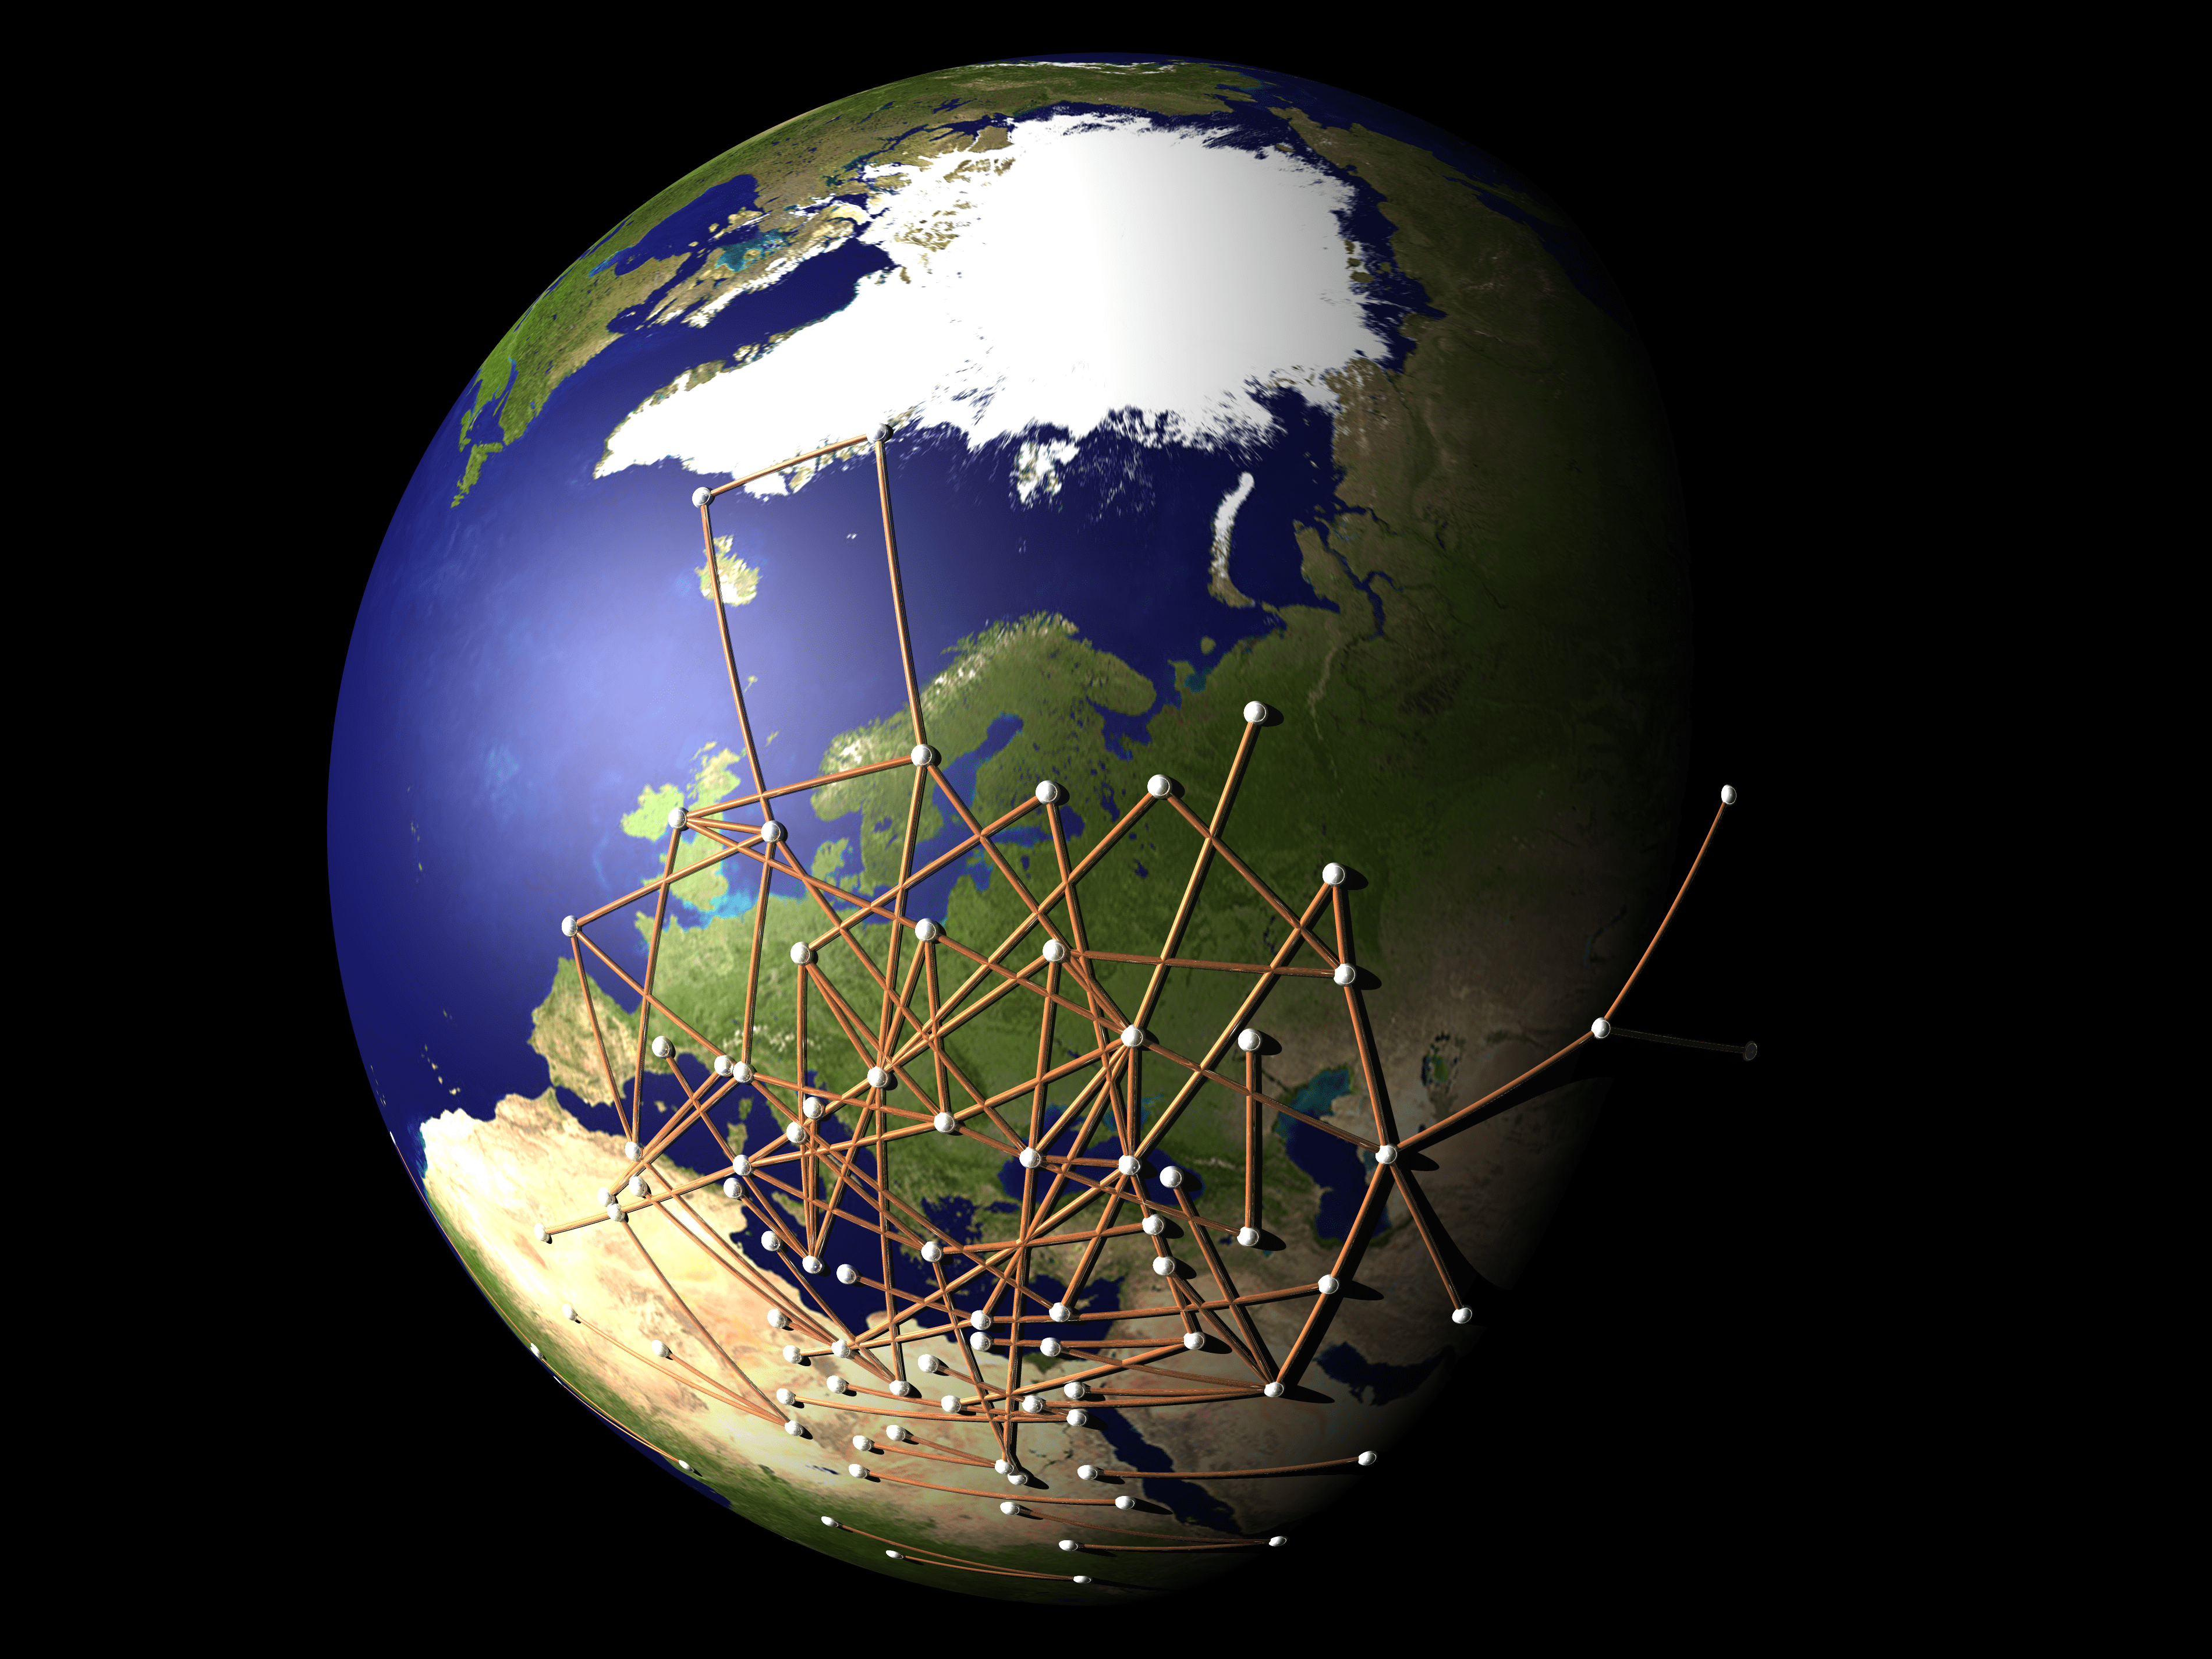 image of earth with pins and string showing network